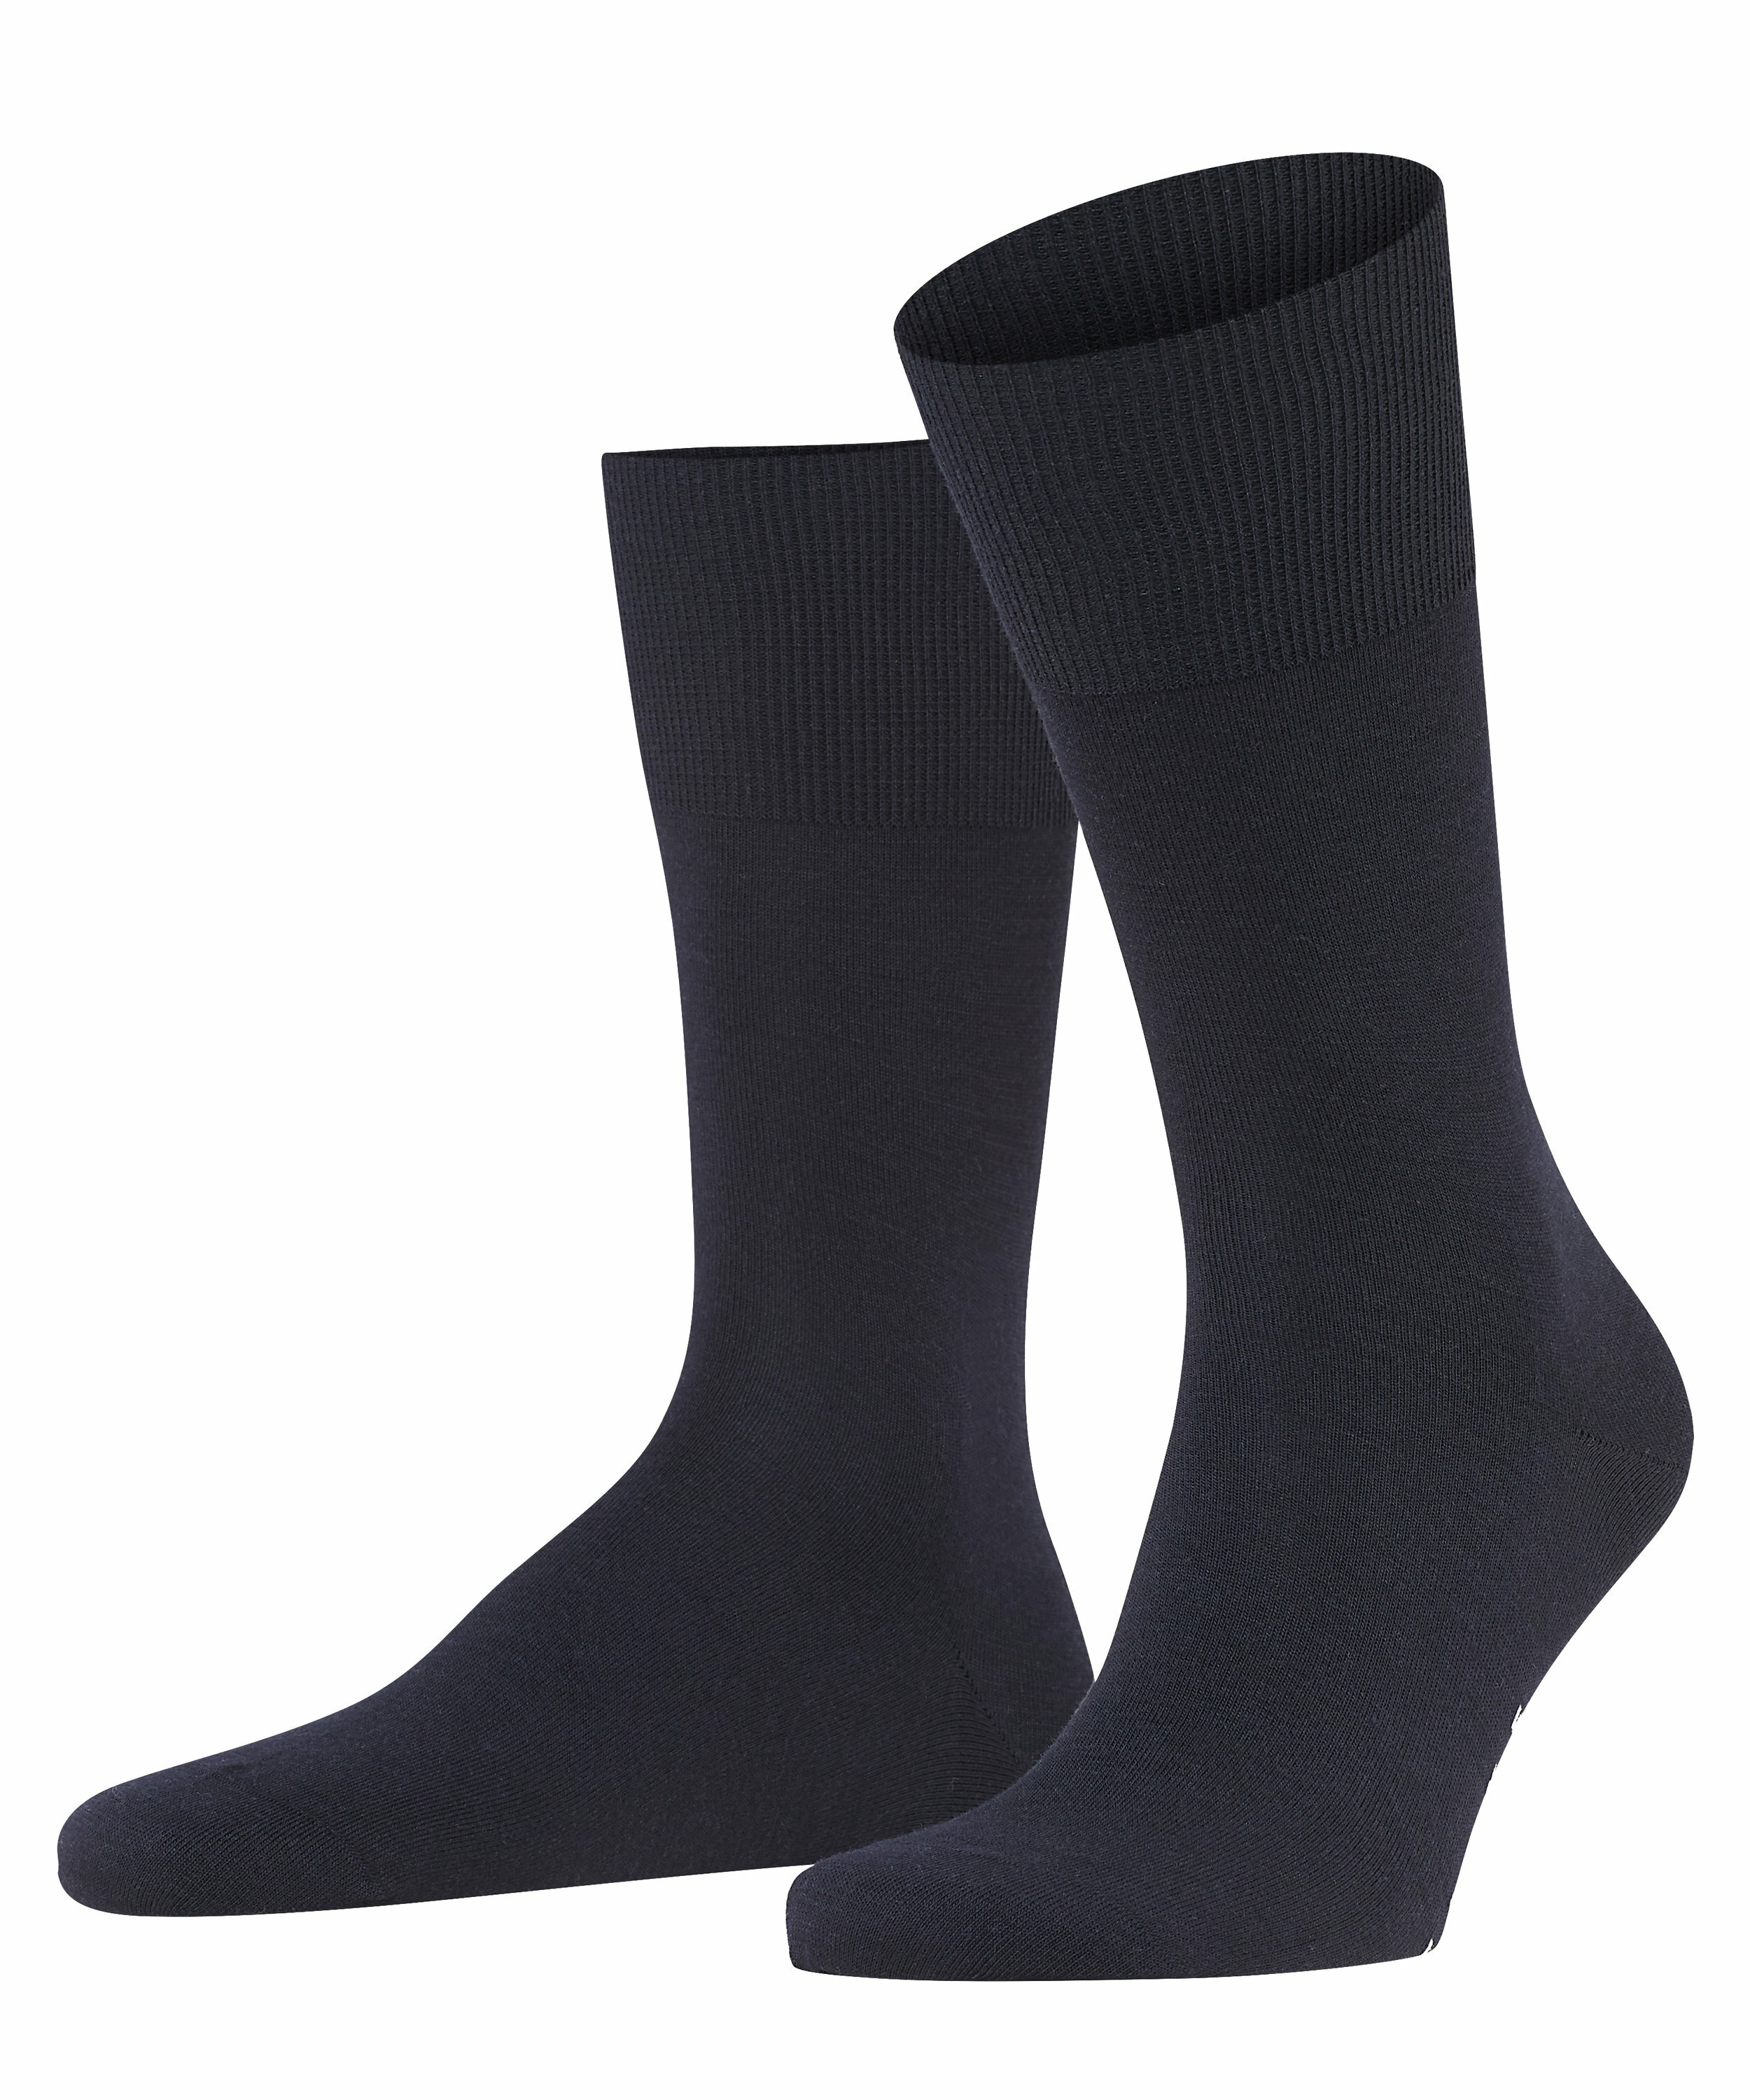 FALKE Airport Herren Socken DARK NAVY